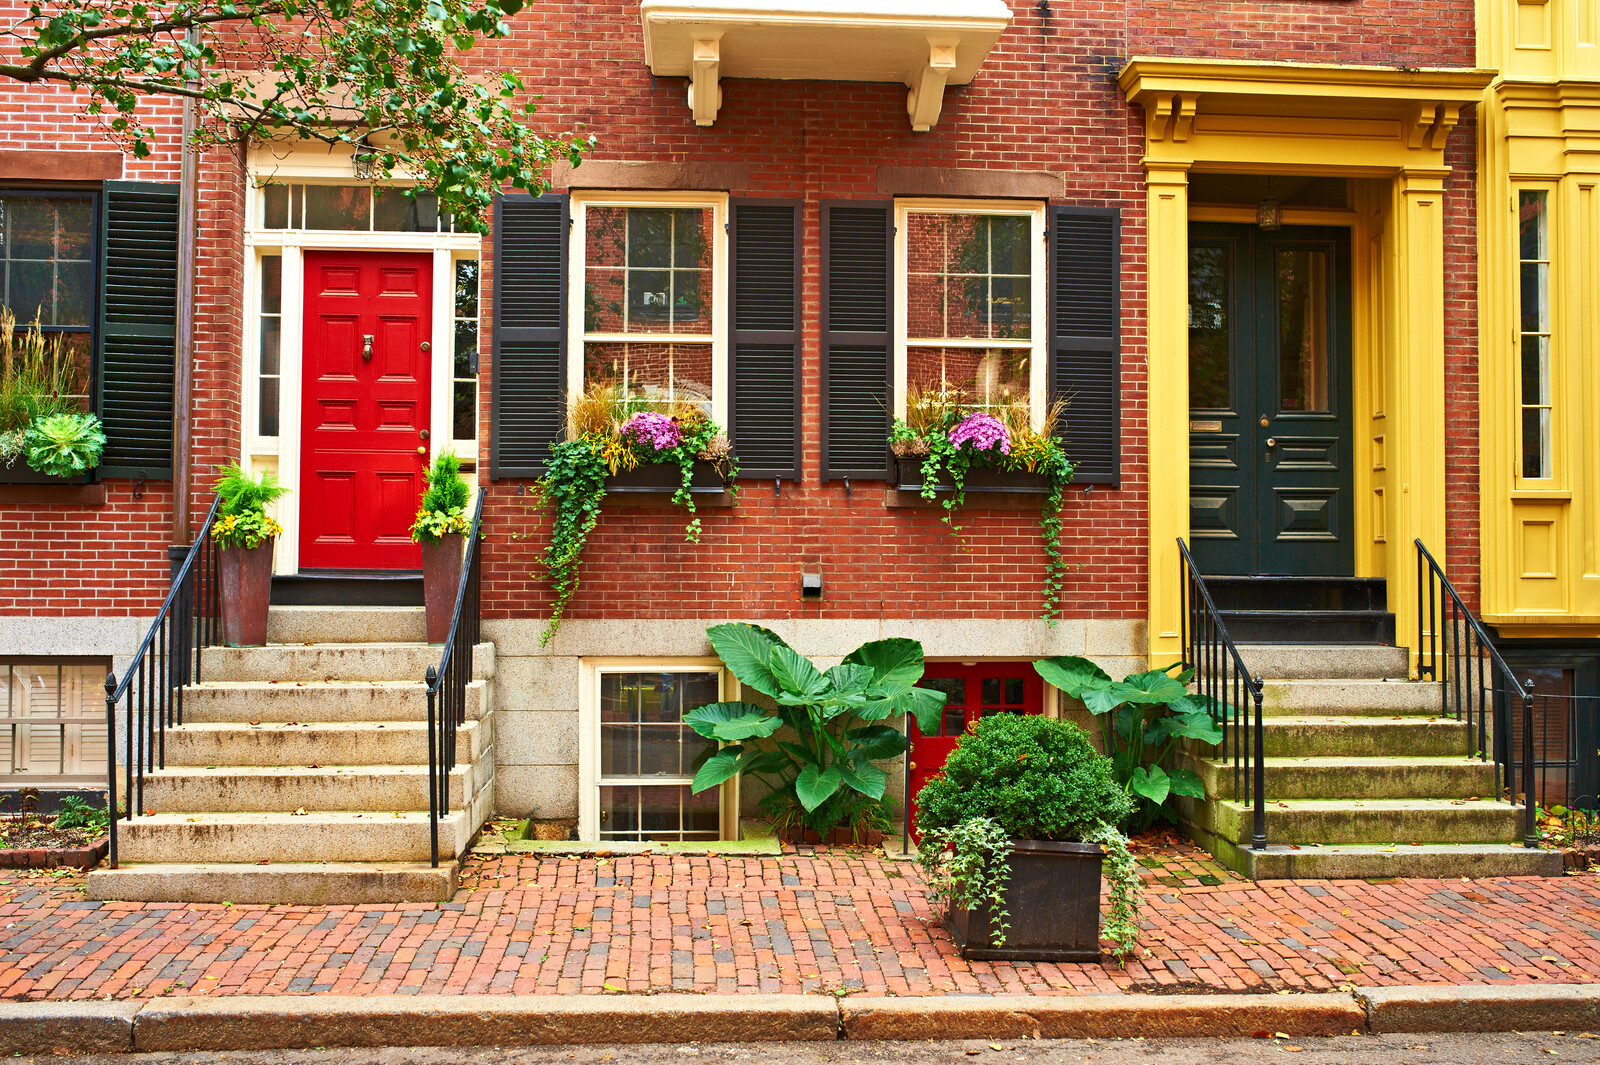 Cobblestone sidewalk in a small town neighborhood with colonial style townhouses, bright colored plants and flowers